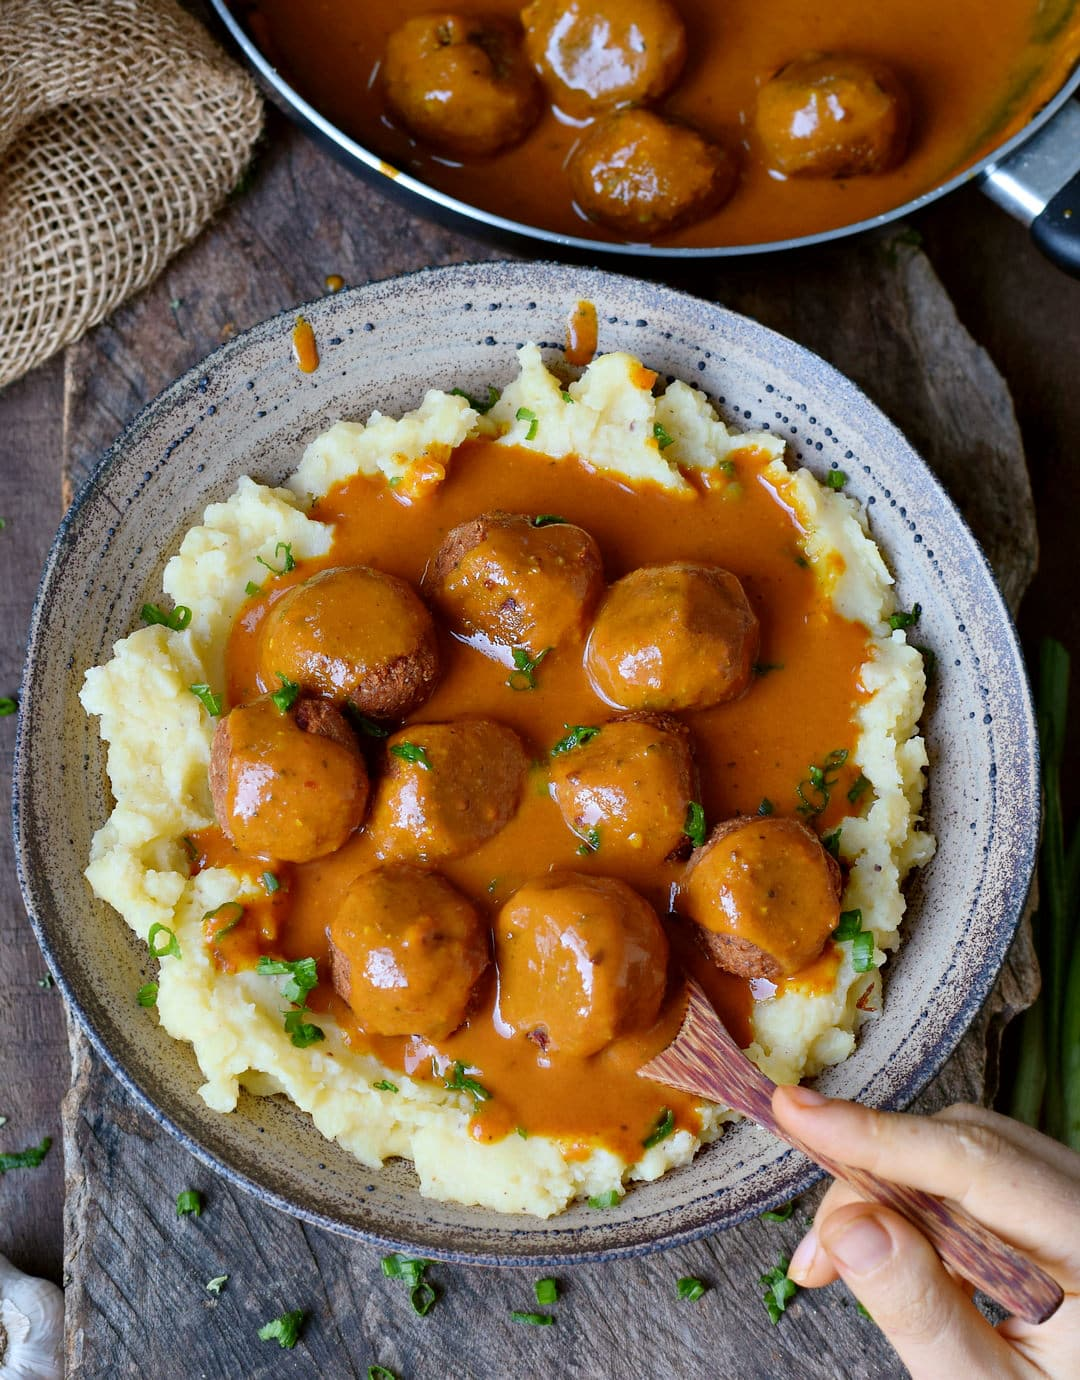 Eating gluten-free vegan meatballs with gravy and mashed potatoes